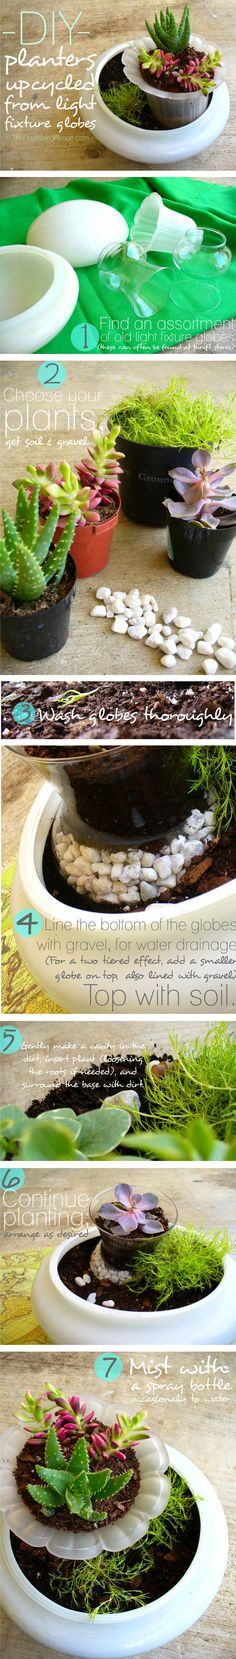 DIY Planters from old light fixture globes!